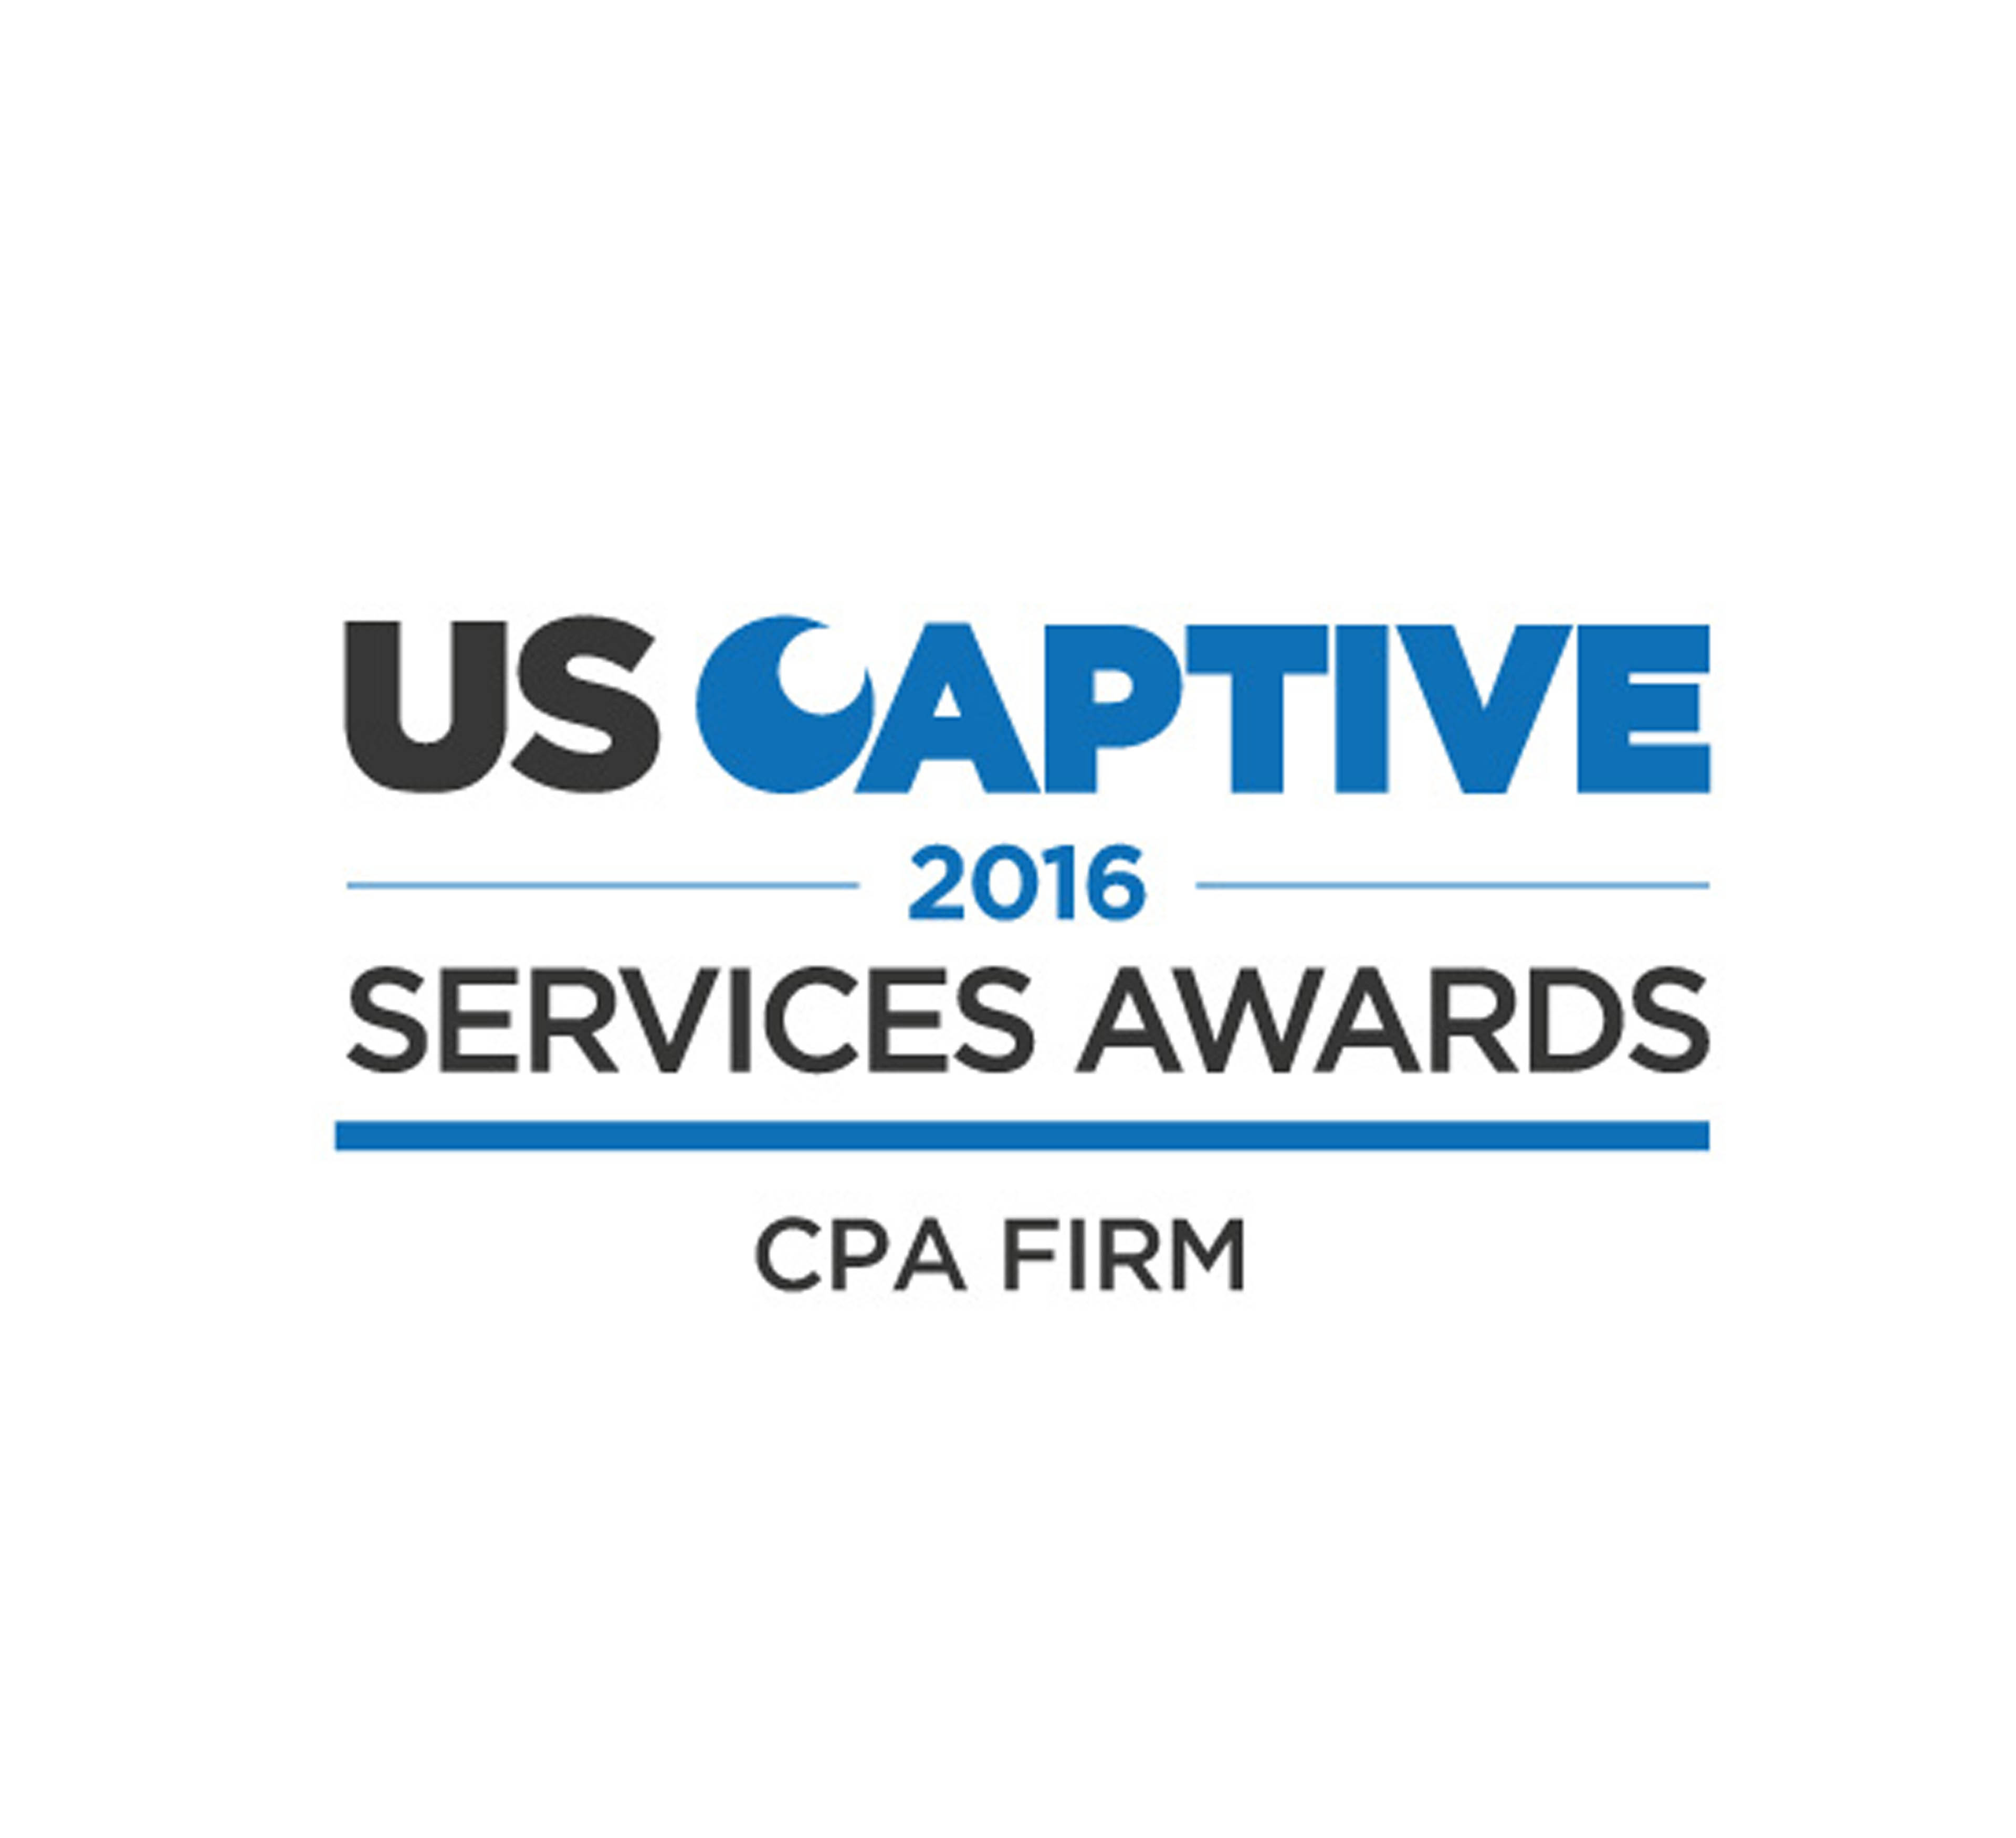 US Captive Services Awards 2016 CPA Firm EY